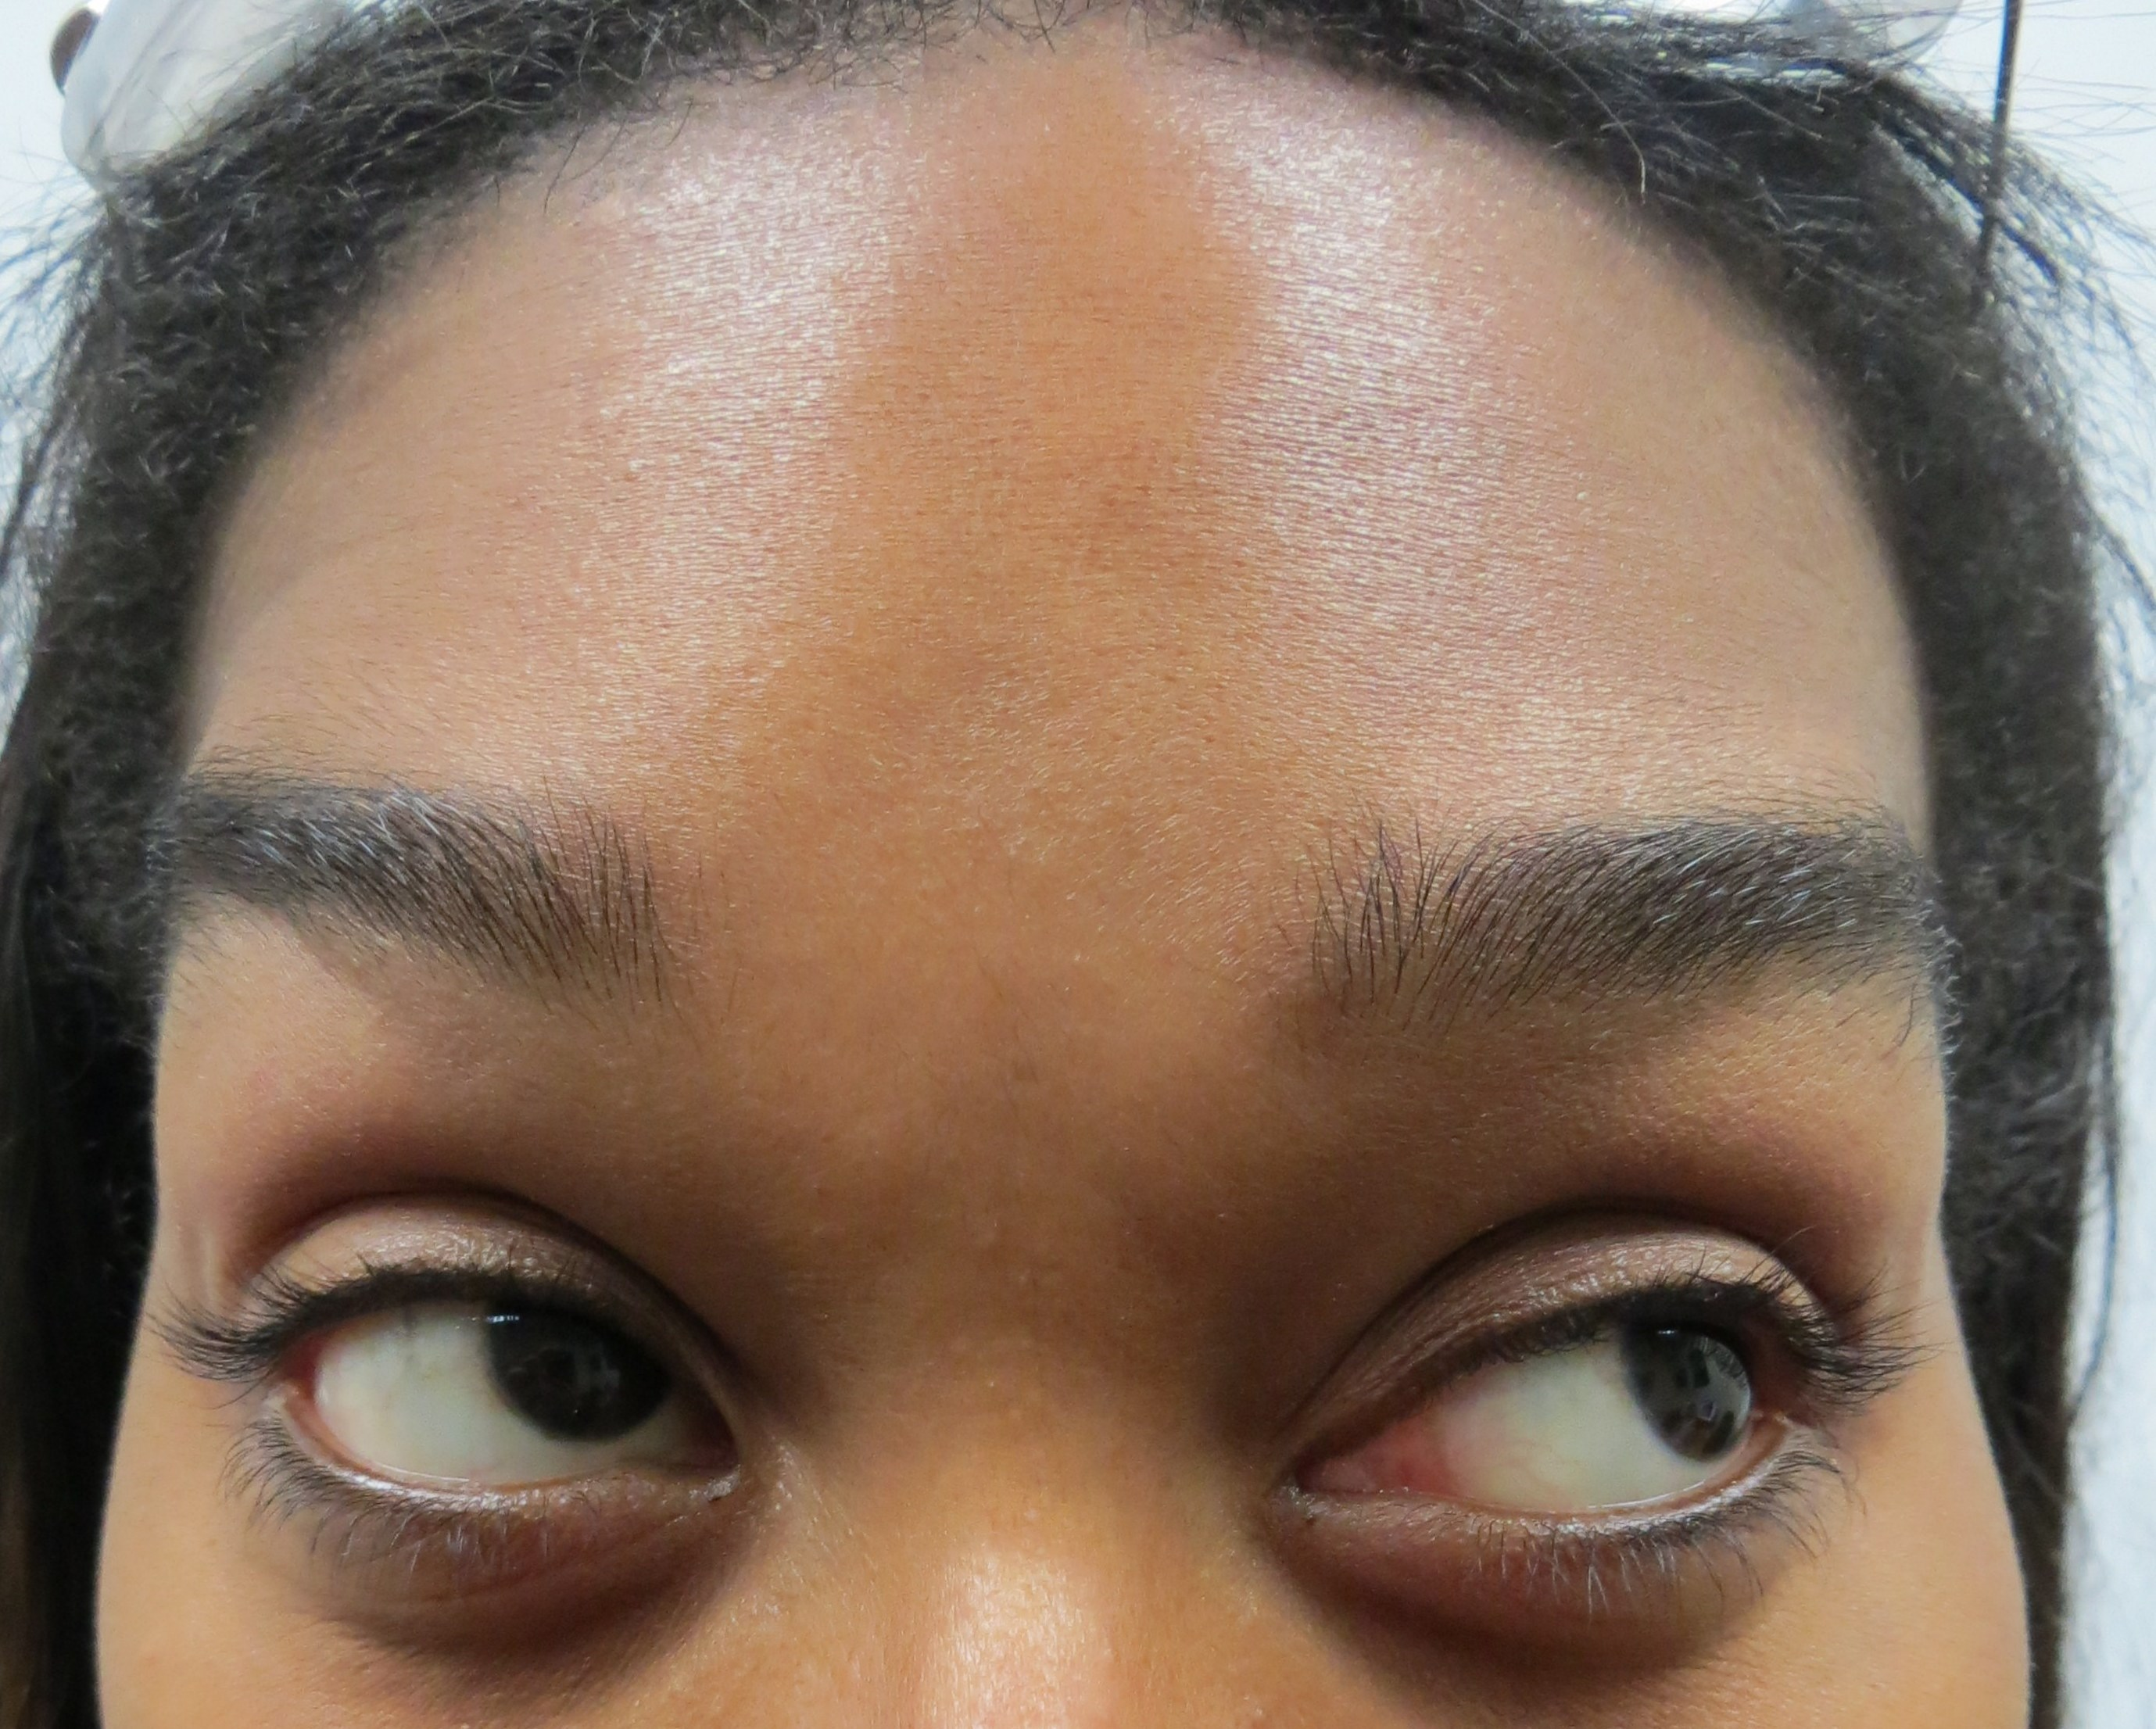 Botox for Forehead lines After Botox & Dr. Lee